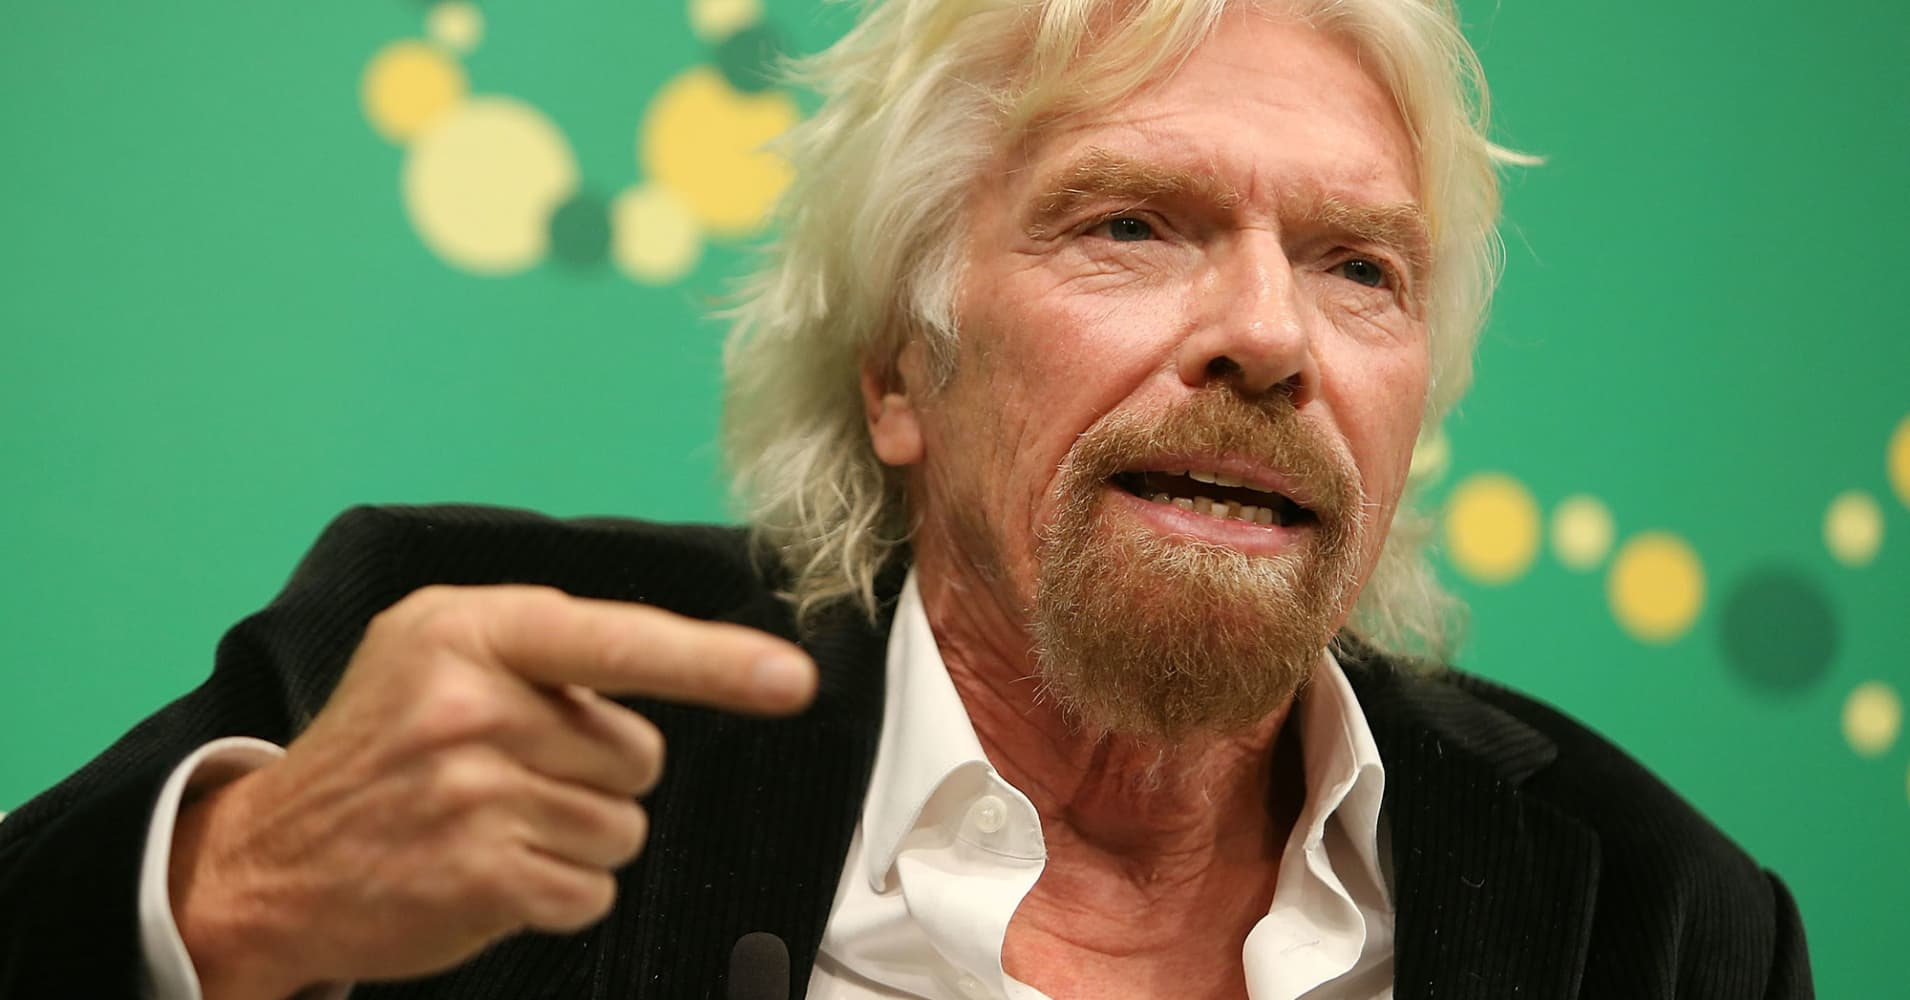 richard branson - photo #2